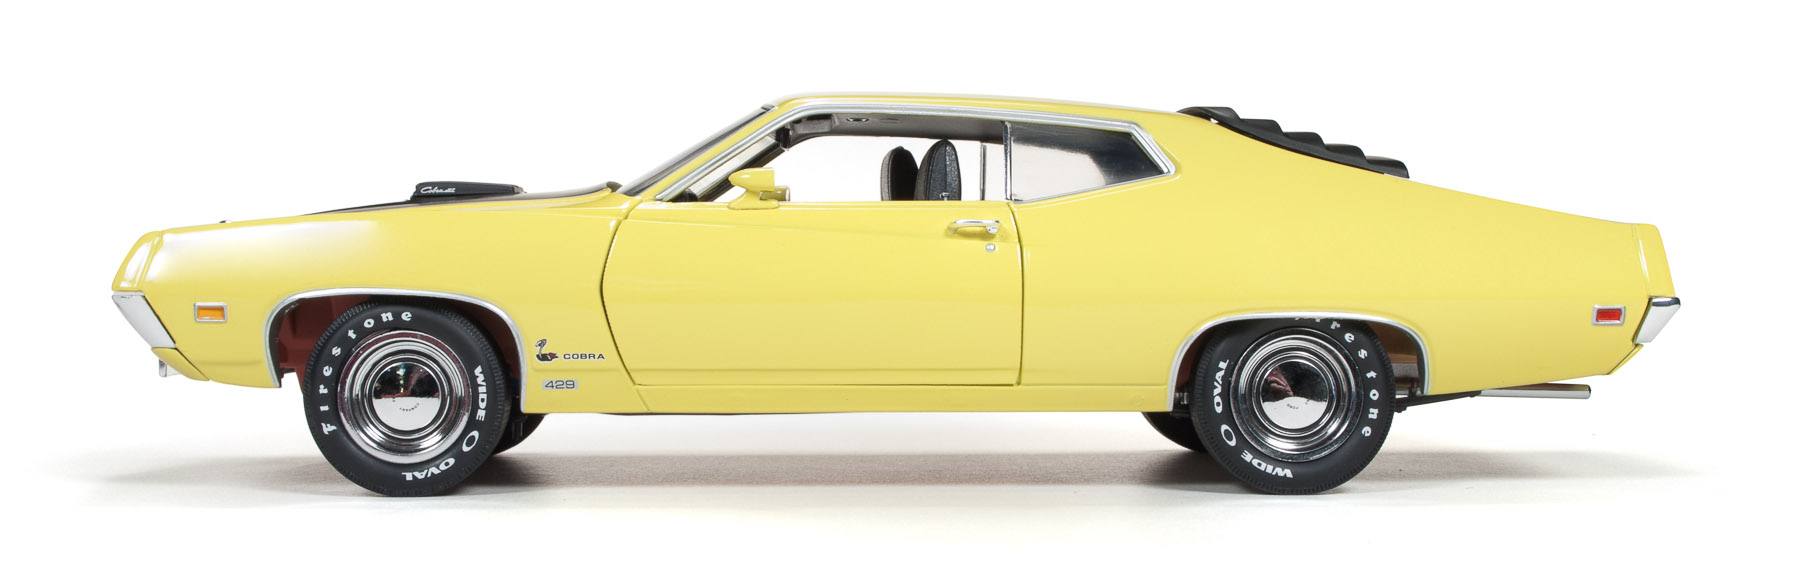 Home Scale   Ford Torino